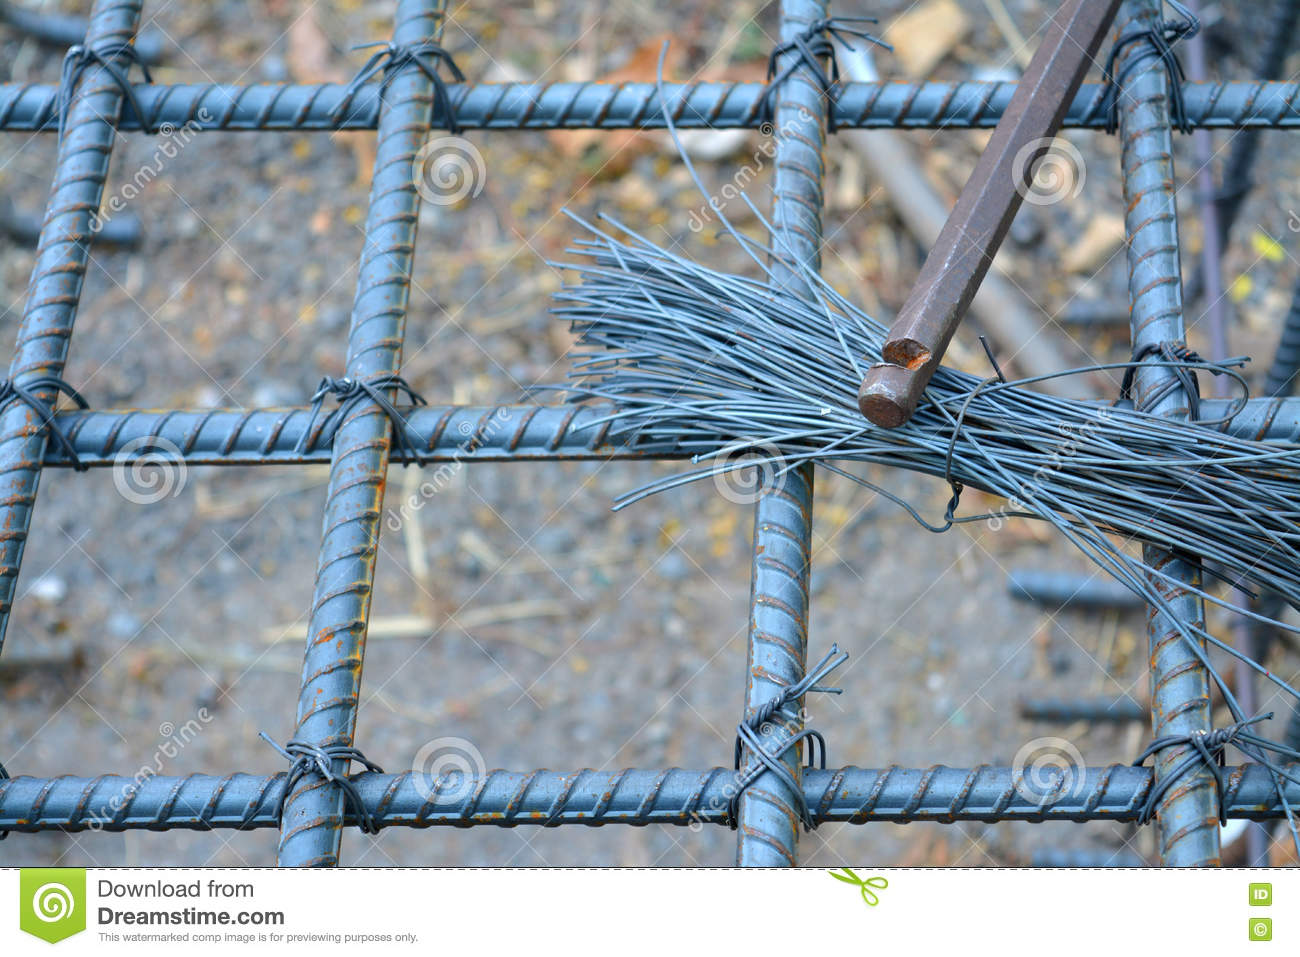 Foundation post metal stock image. Image of grunge, hard - 76850085